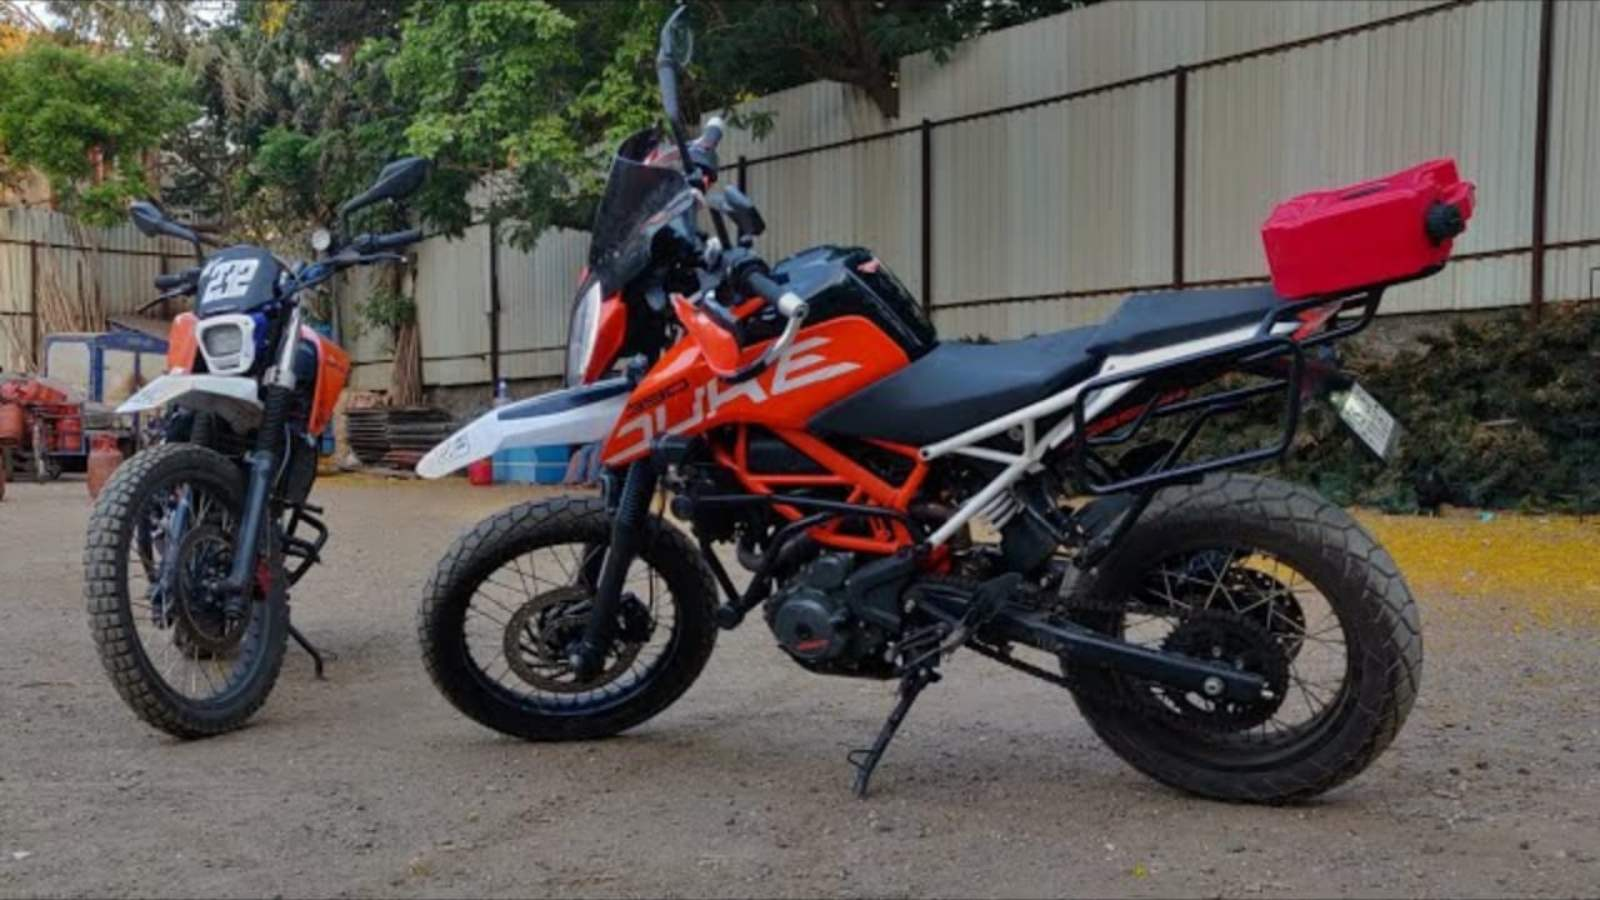 Why Wait For The Ktm Adventure 390 When You Can Convert A Duke 390 Into One Motoroids